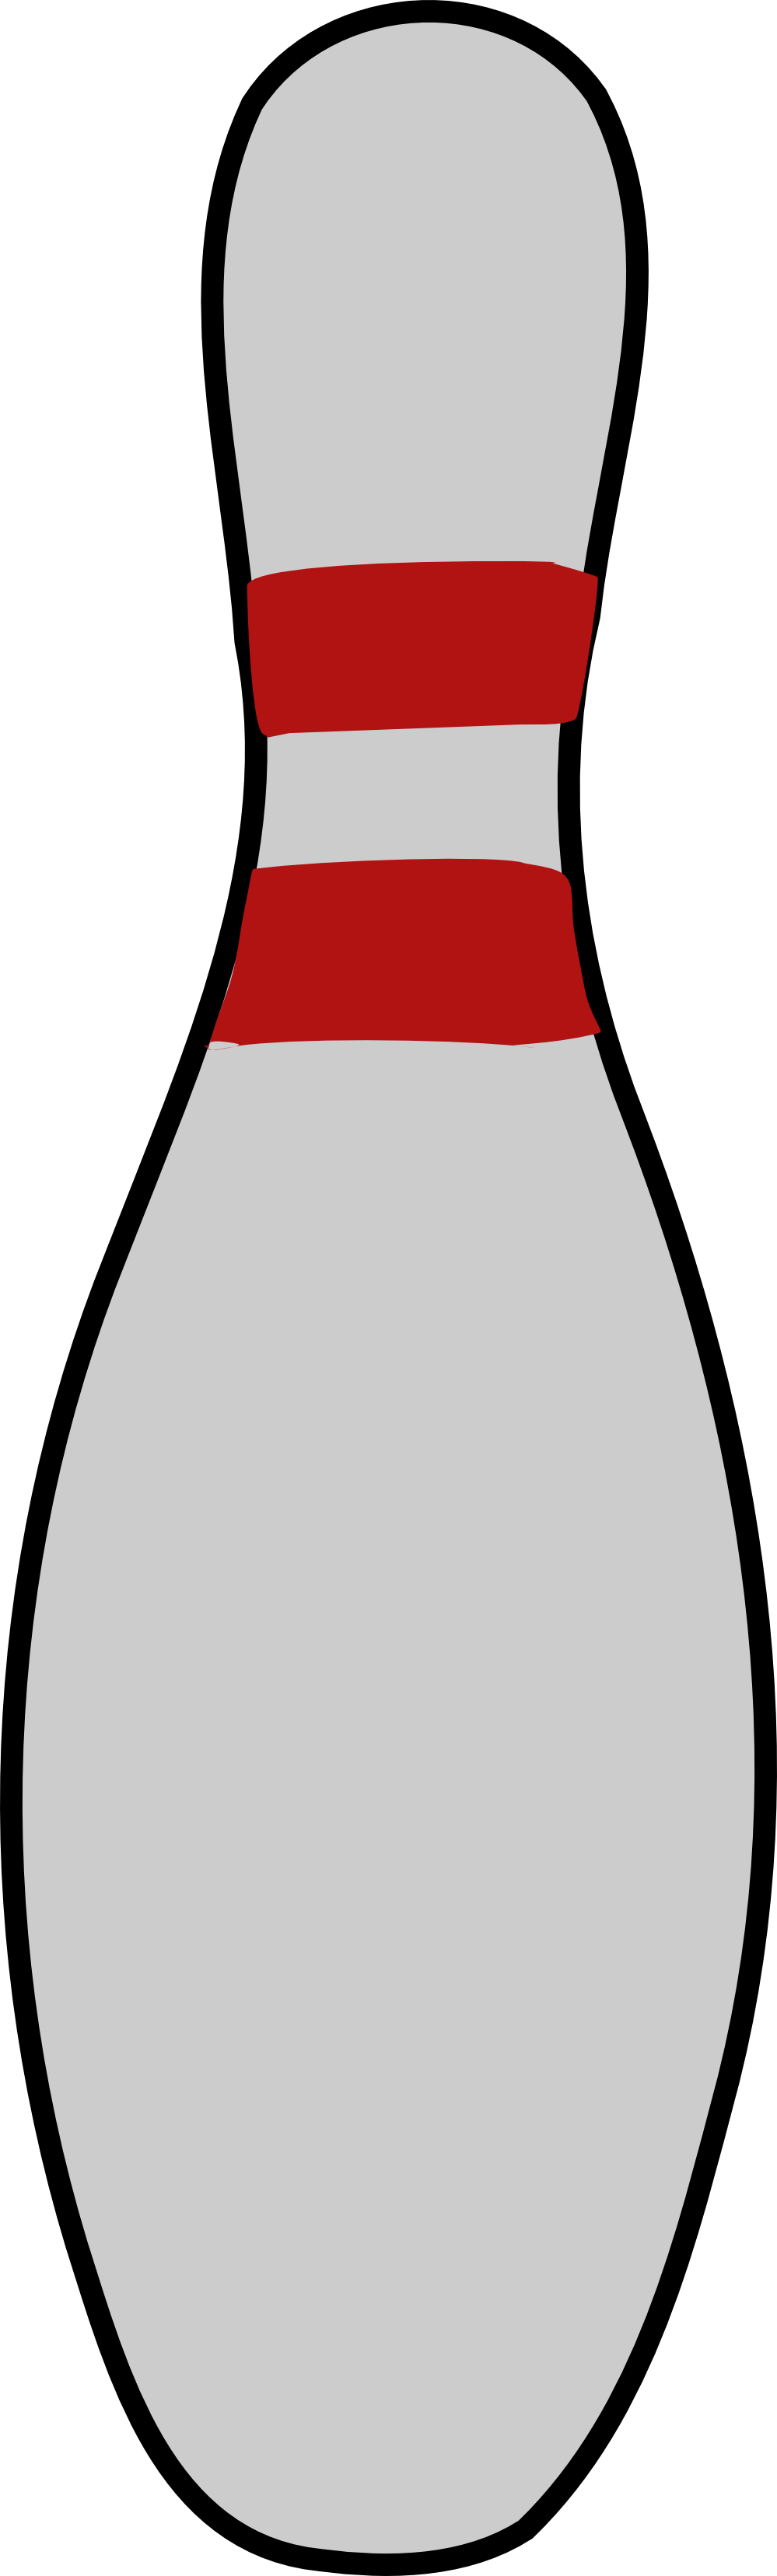 Bowling Pins Picture   Free Cliparts That You Can Download To You